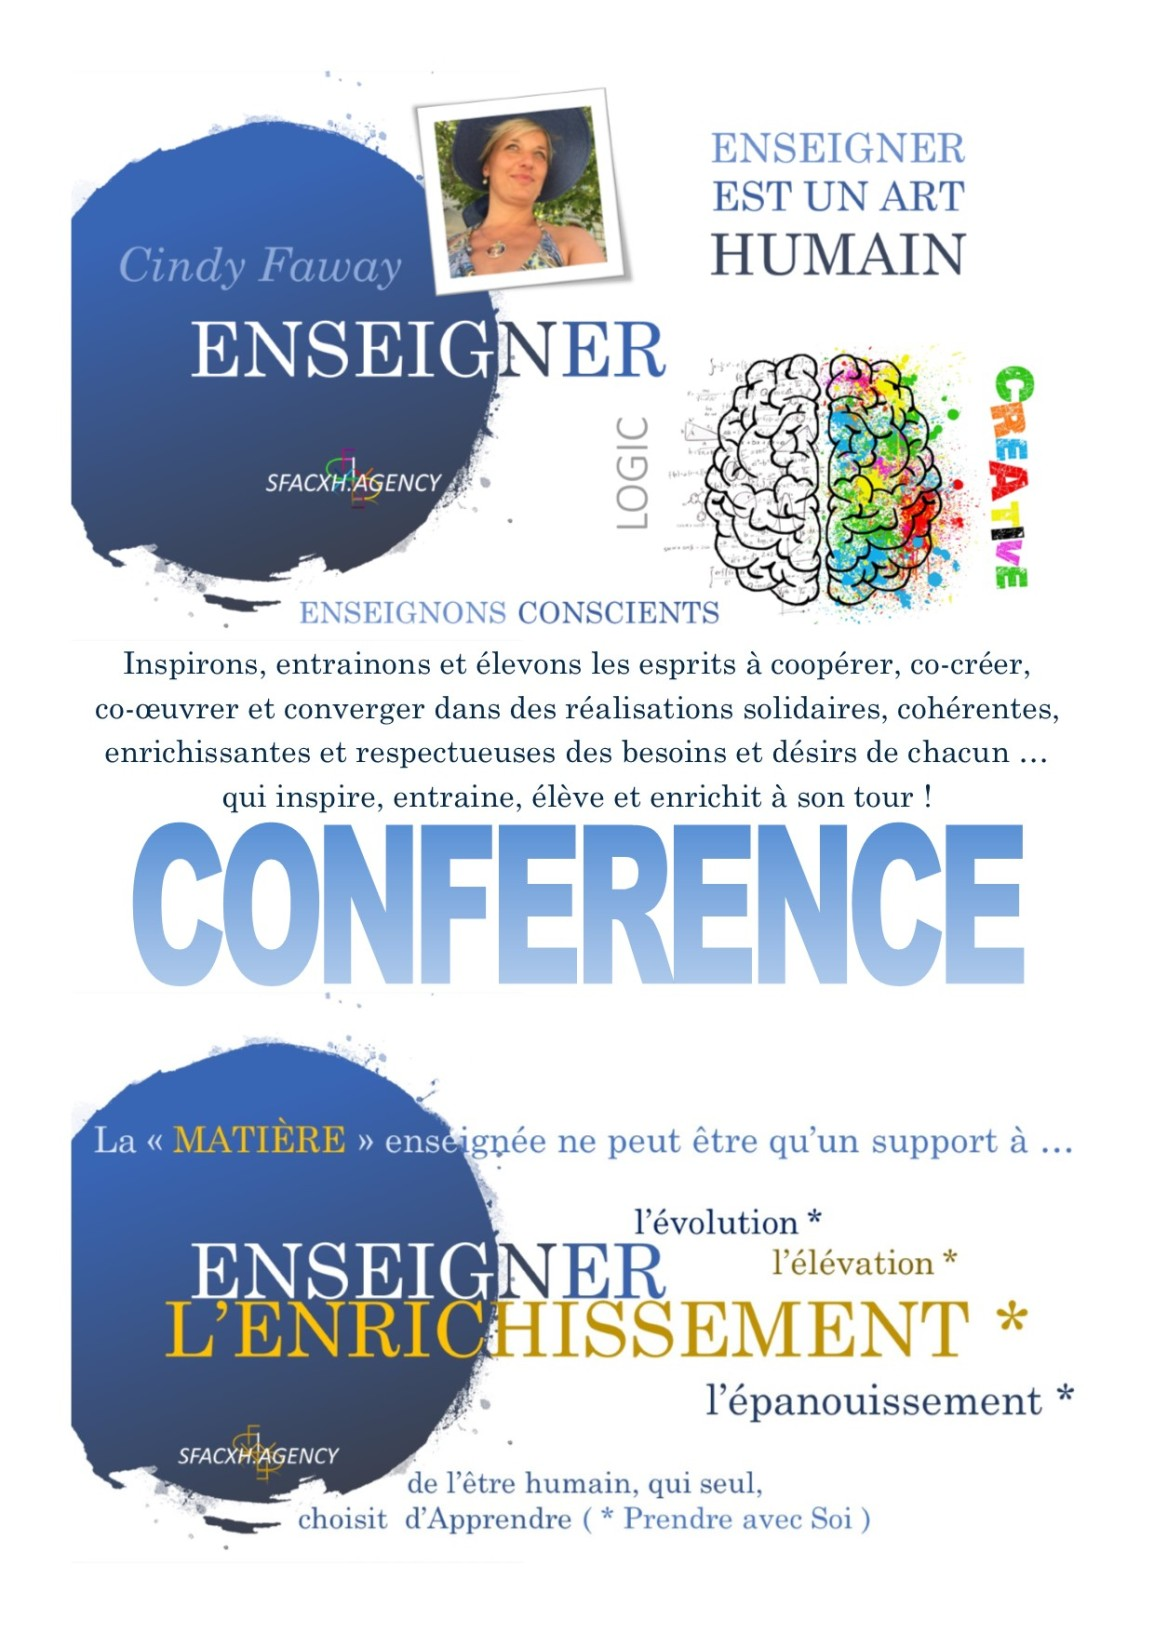 CONFERENCE ENSEIGNER SFACXH AGENCY